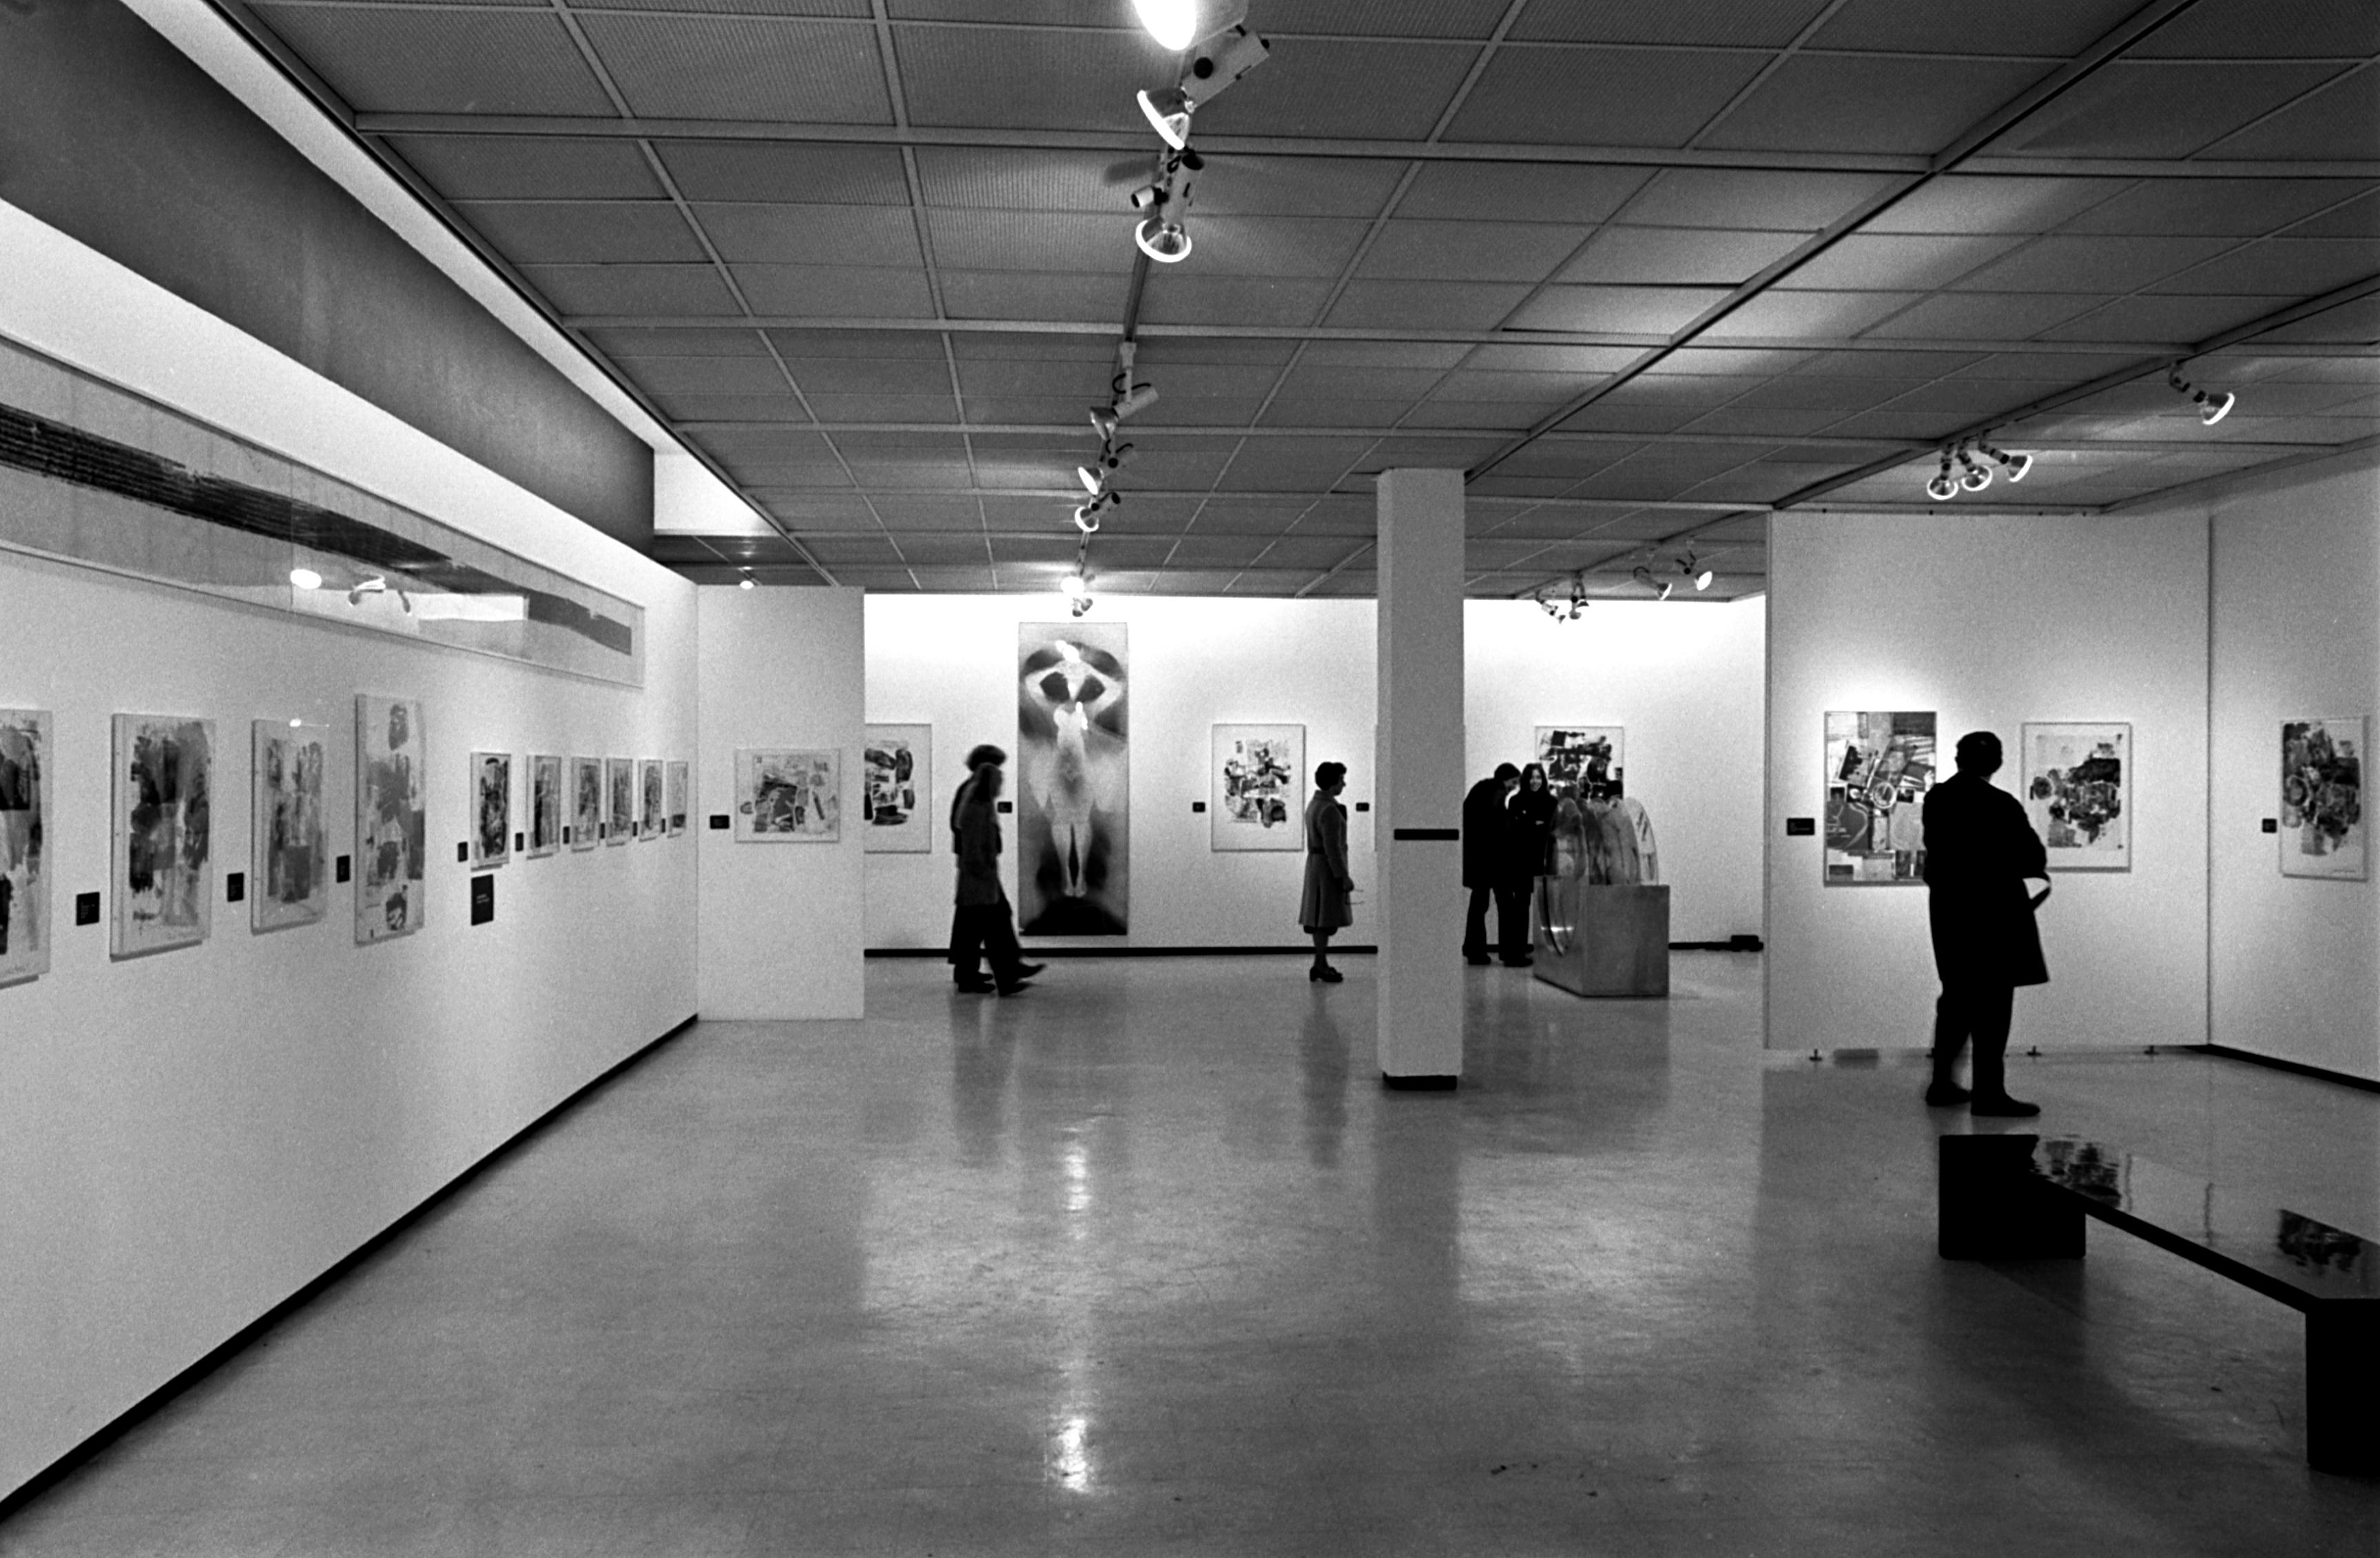 A black-and-white installation photograph of graphic artworks and visitors.